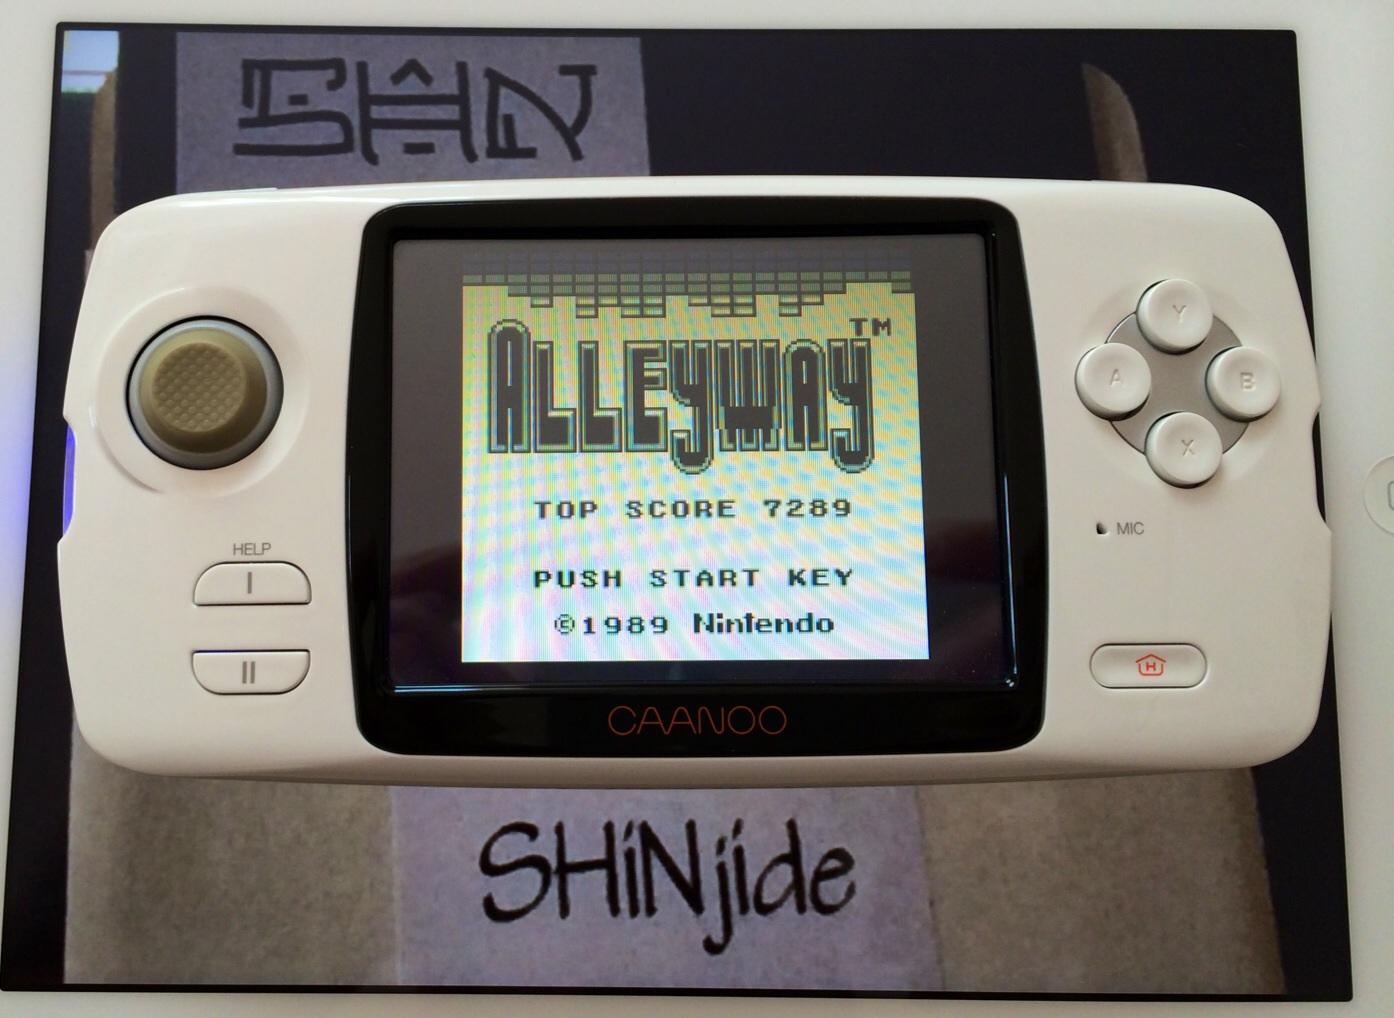 SHiNjide: Alleyway (Game Boy Emulated) 7,289 points on 2014-07-06 15:22:29